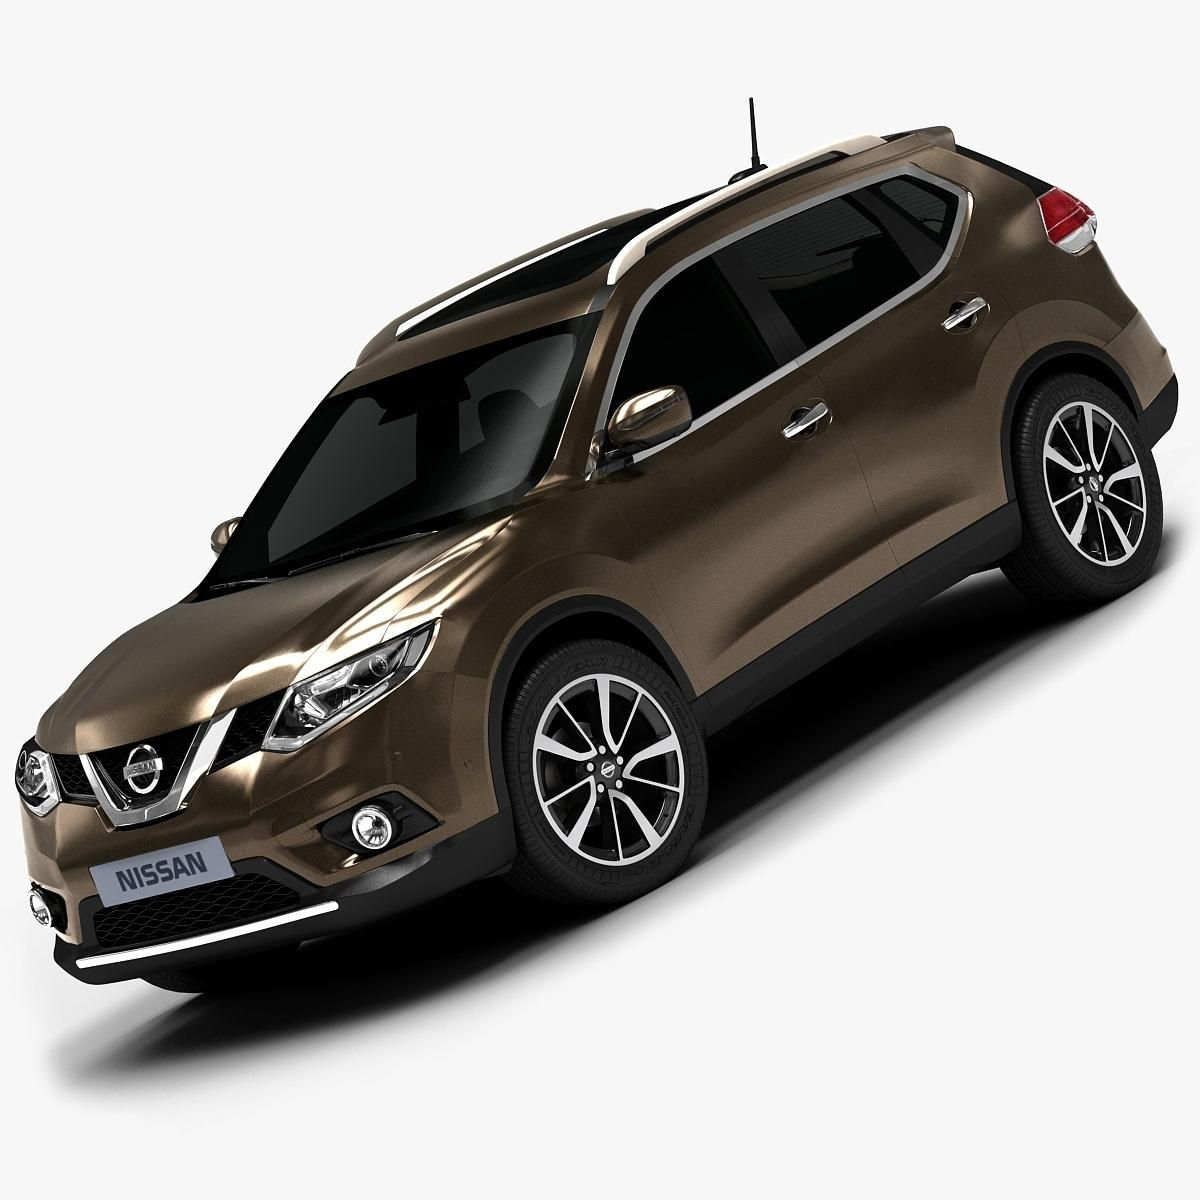 Interior Design Nissan X Trail: 2014 Nissan Rogue (Low Interior) 3D Model #AD ,#Nissan